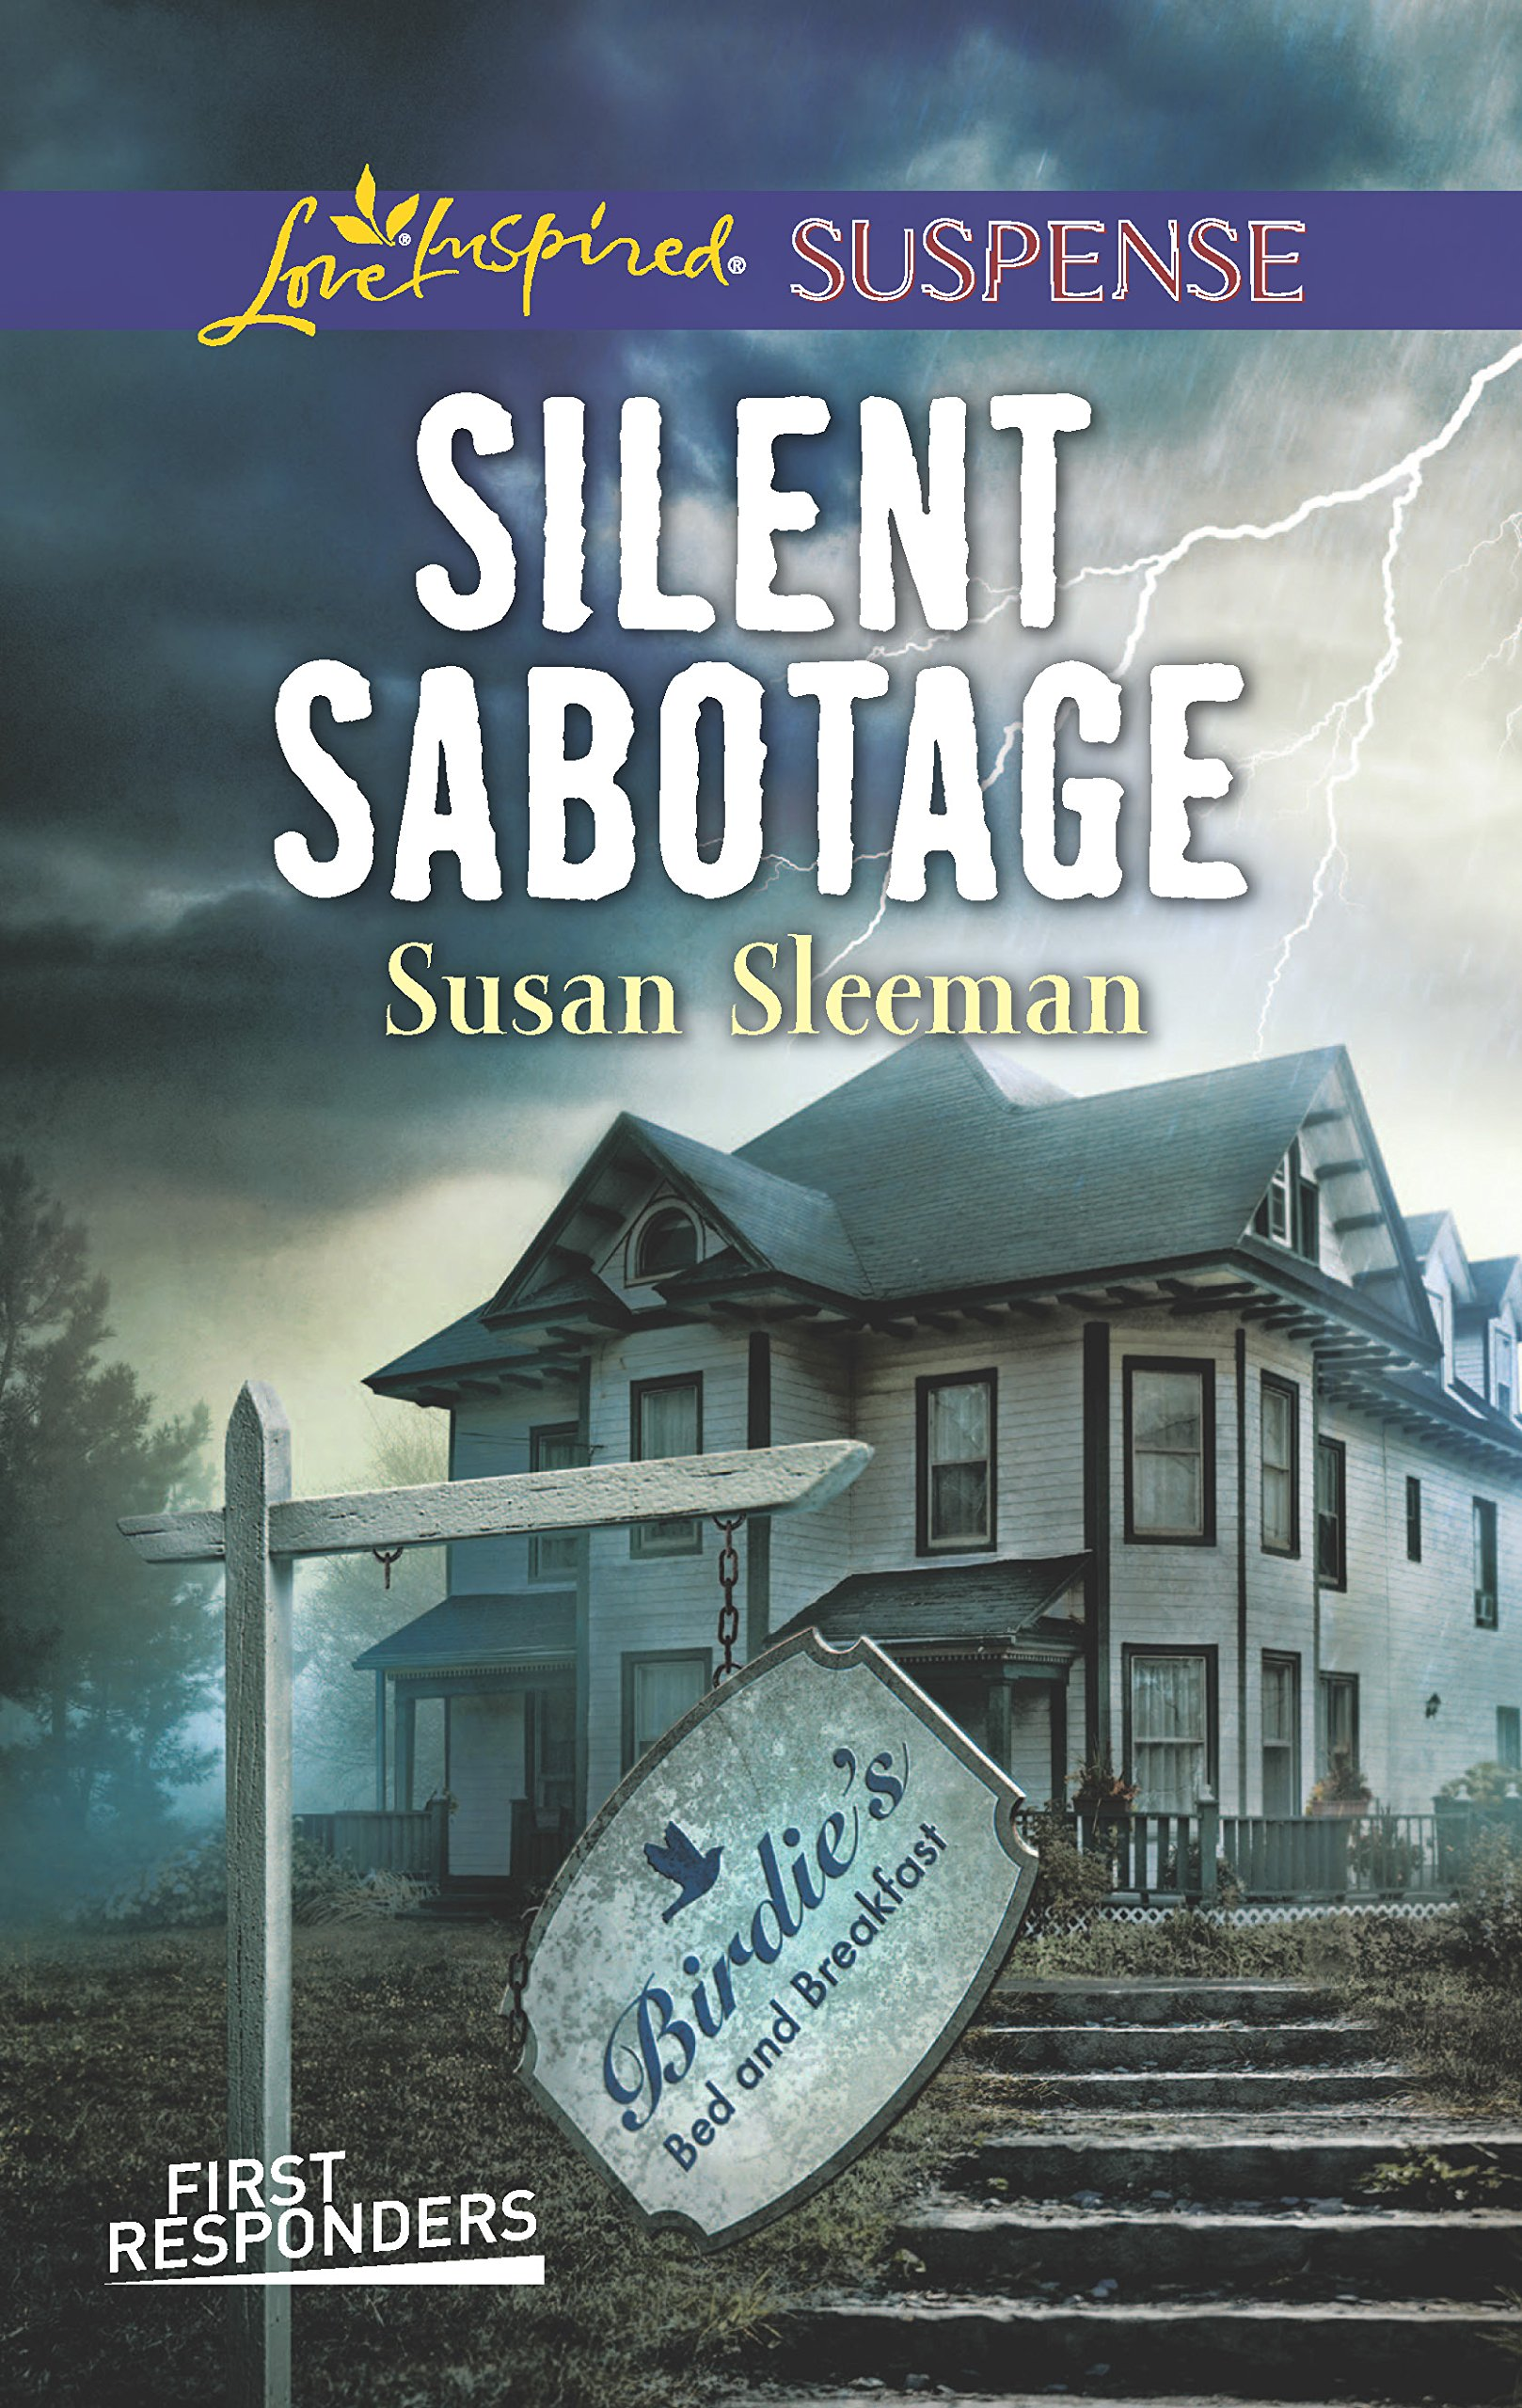 Silent Sabotage (Love Inspired Suspense): Amazon.co.uk: Susan Sleeman:  9780373447596: Books